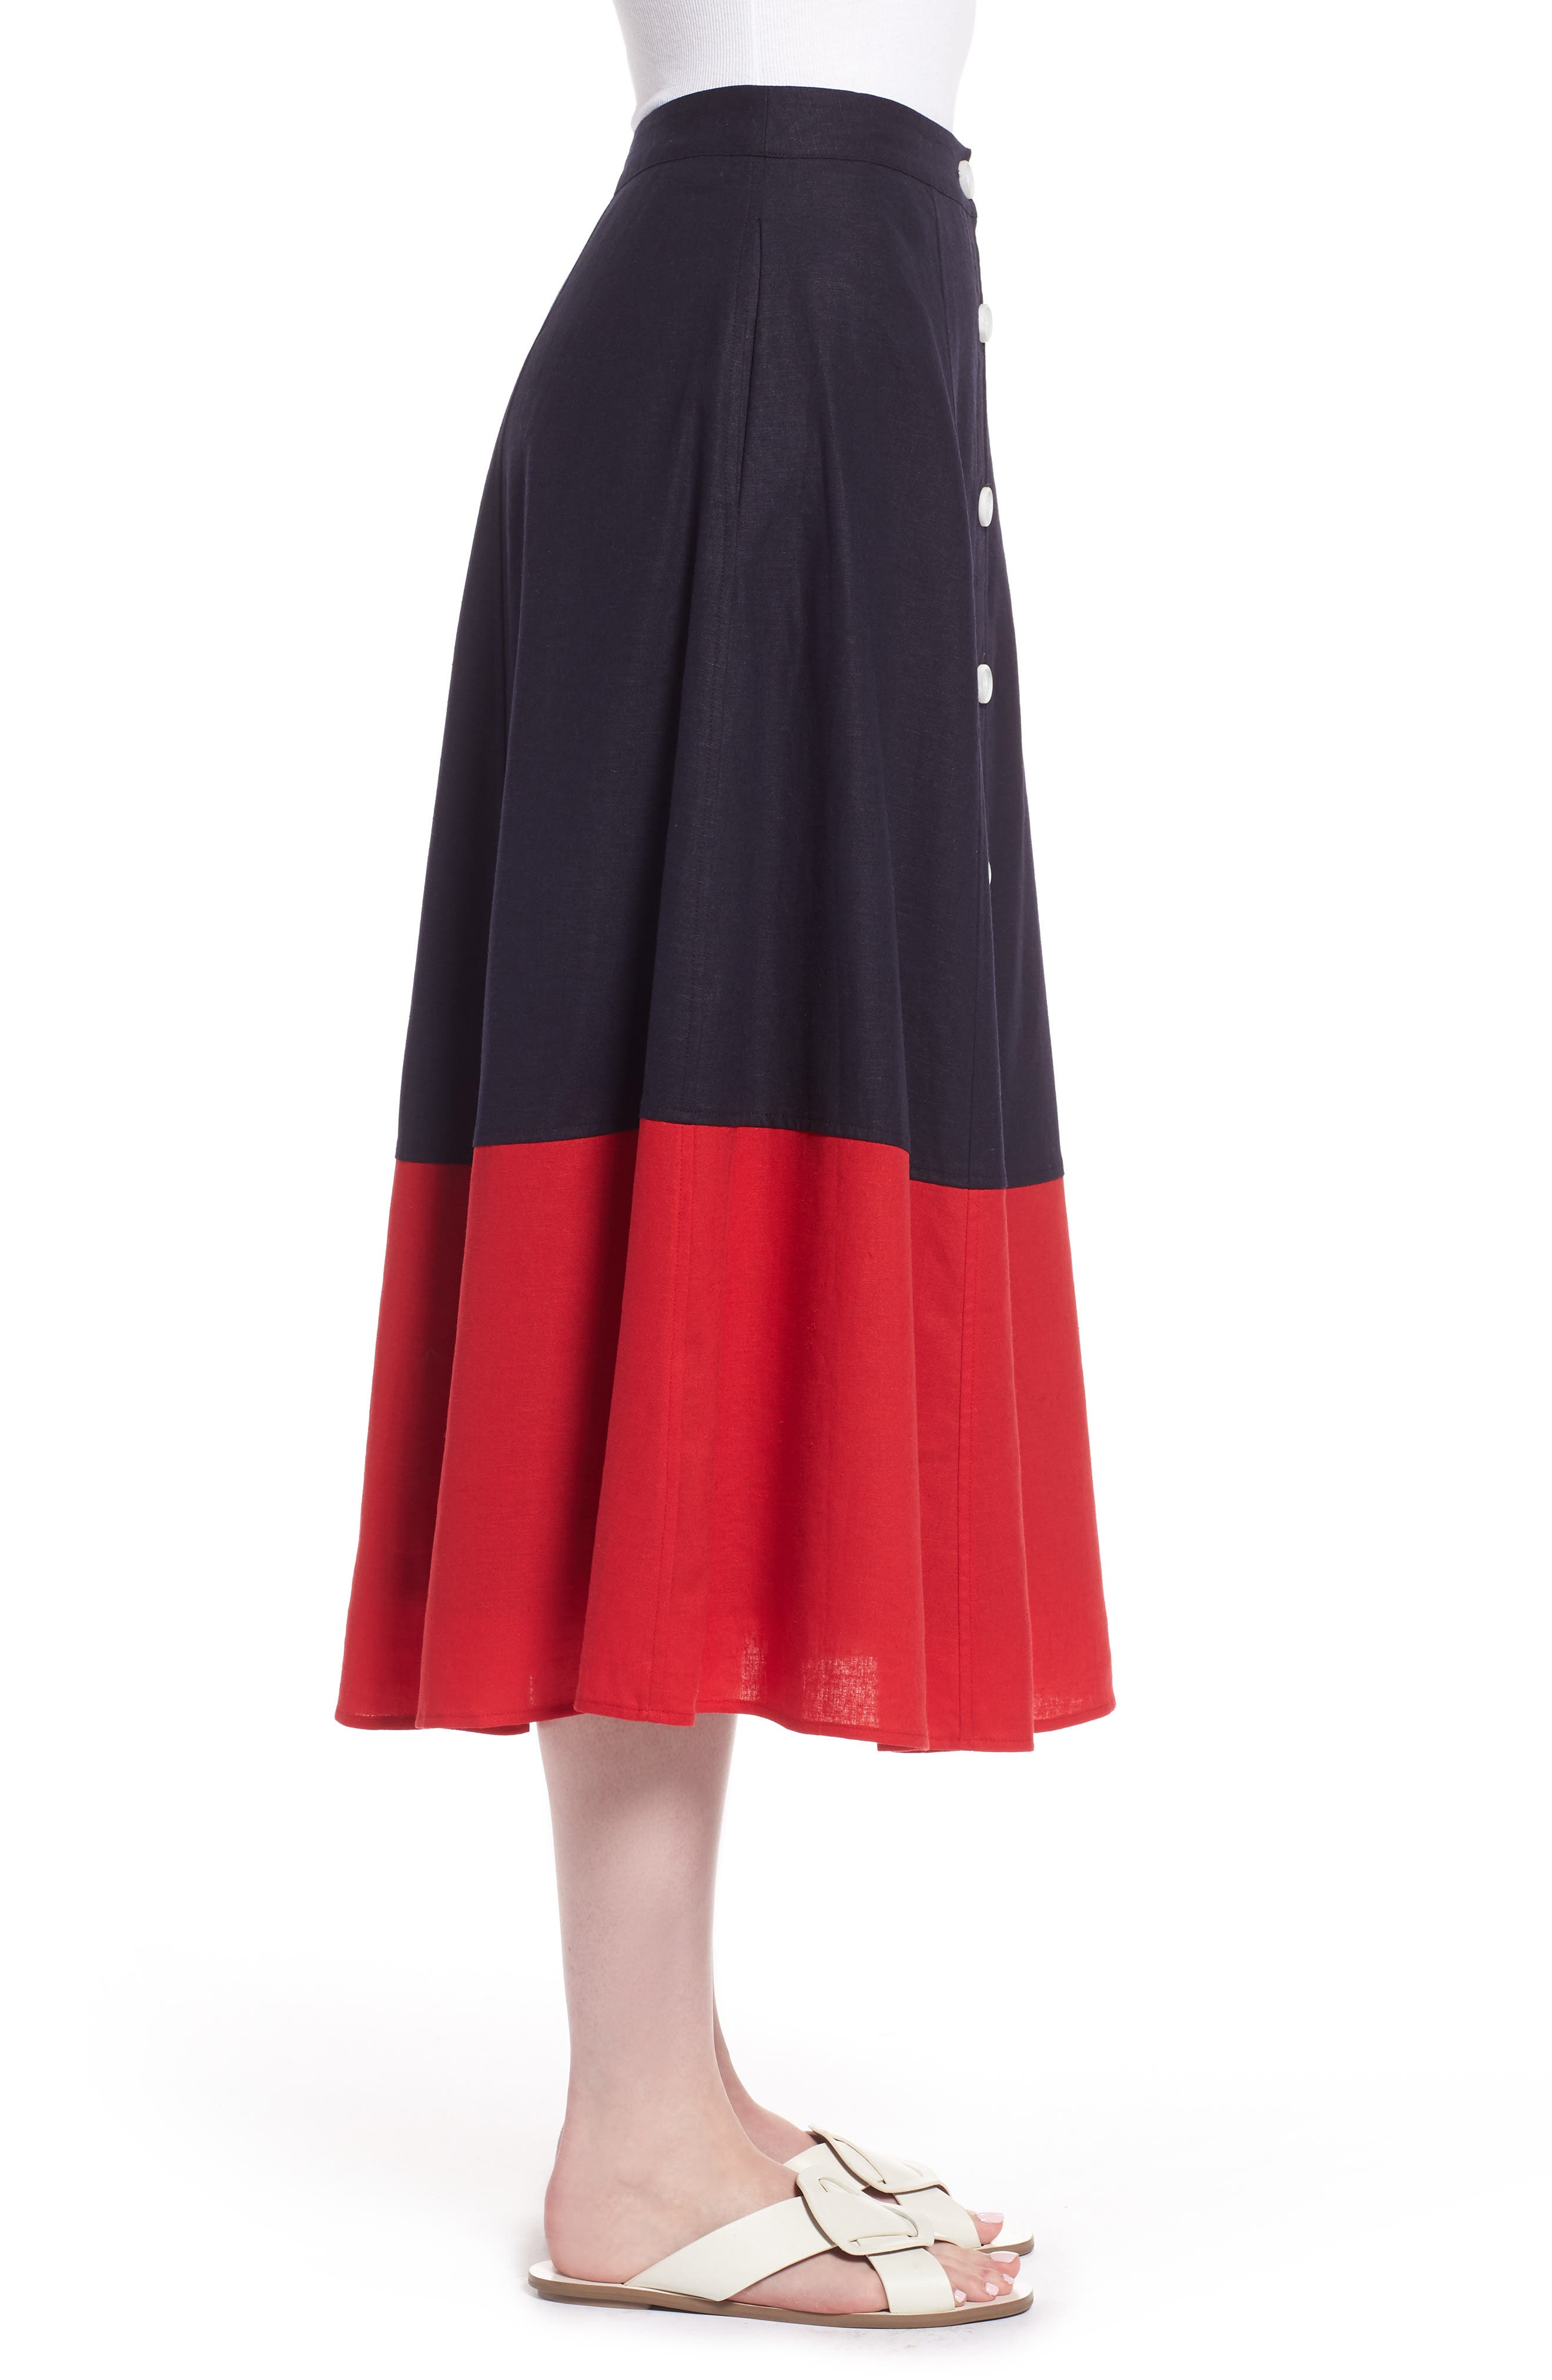 Colorblock Linen Blend Skirt,                             Alternate thumbnail 3, color,                             Navy- Red Colorblock